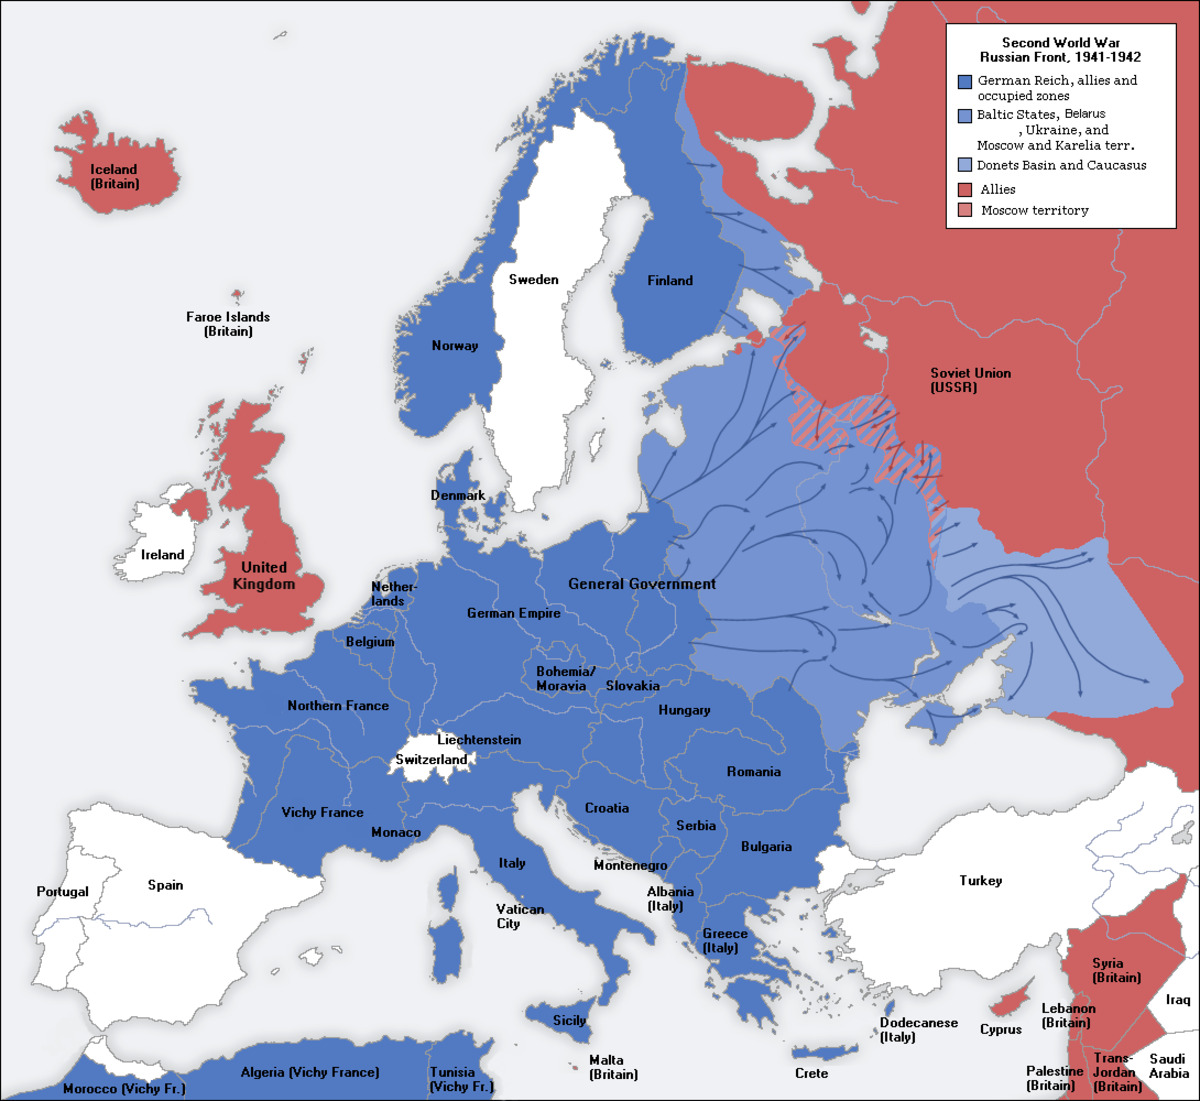 A map of German occupied territories during World War Two.